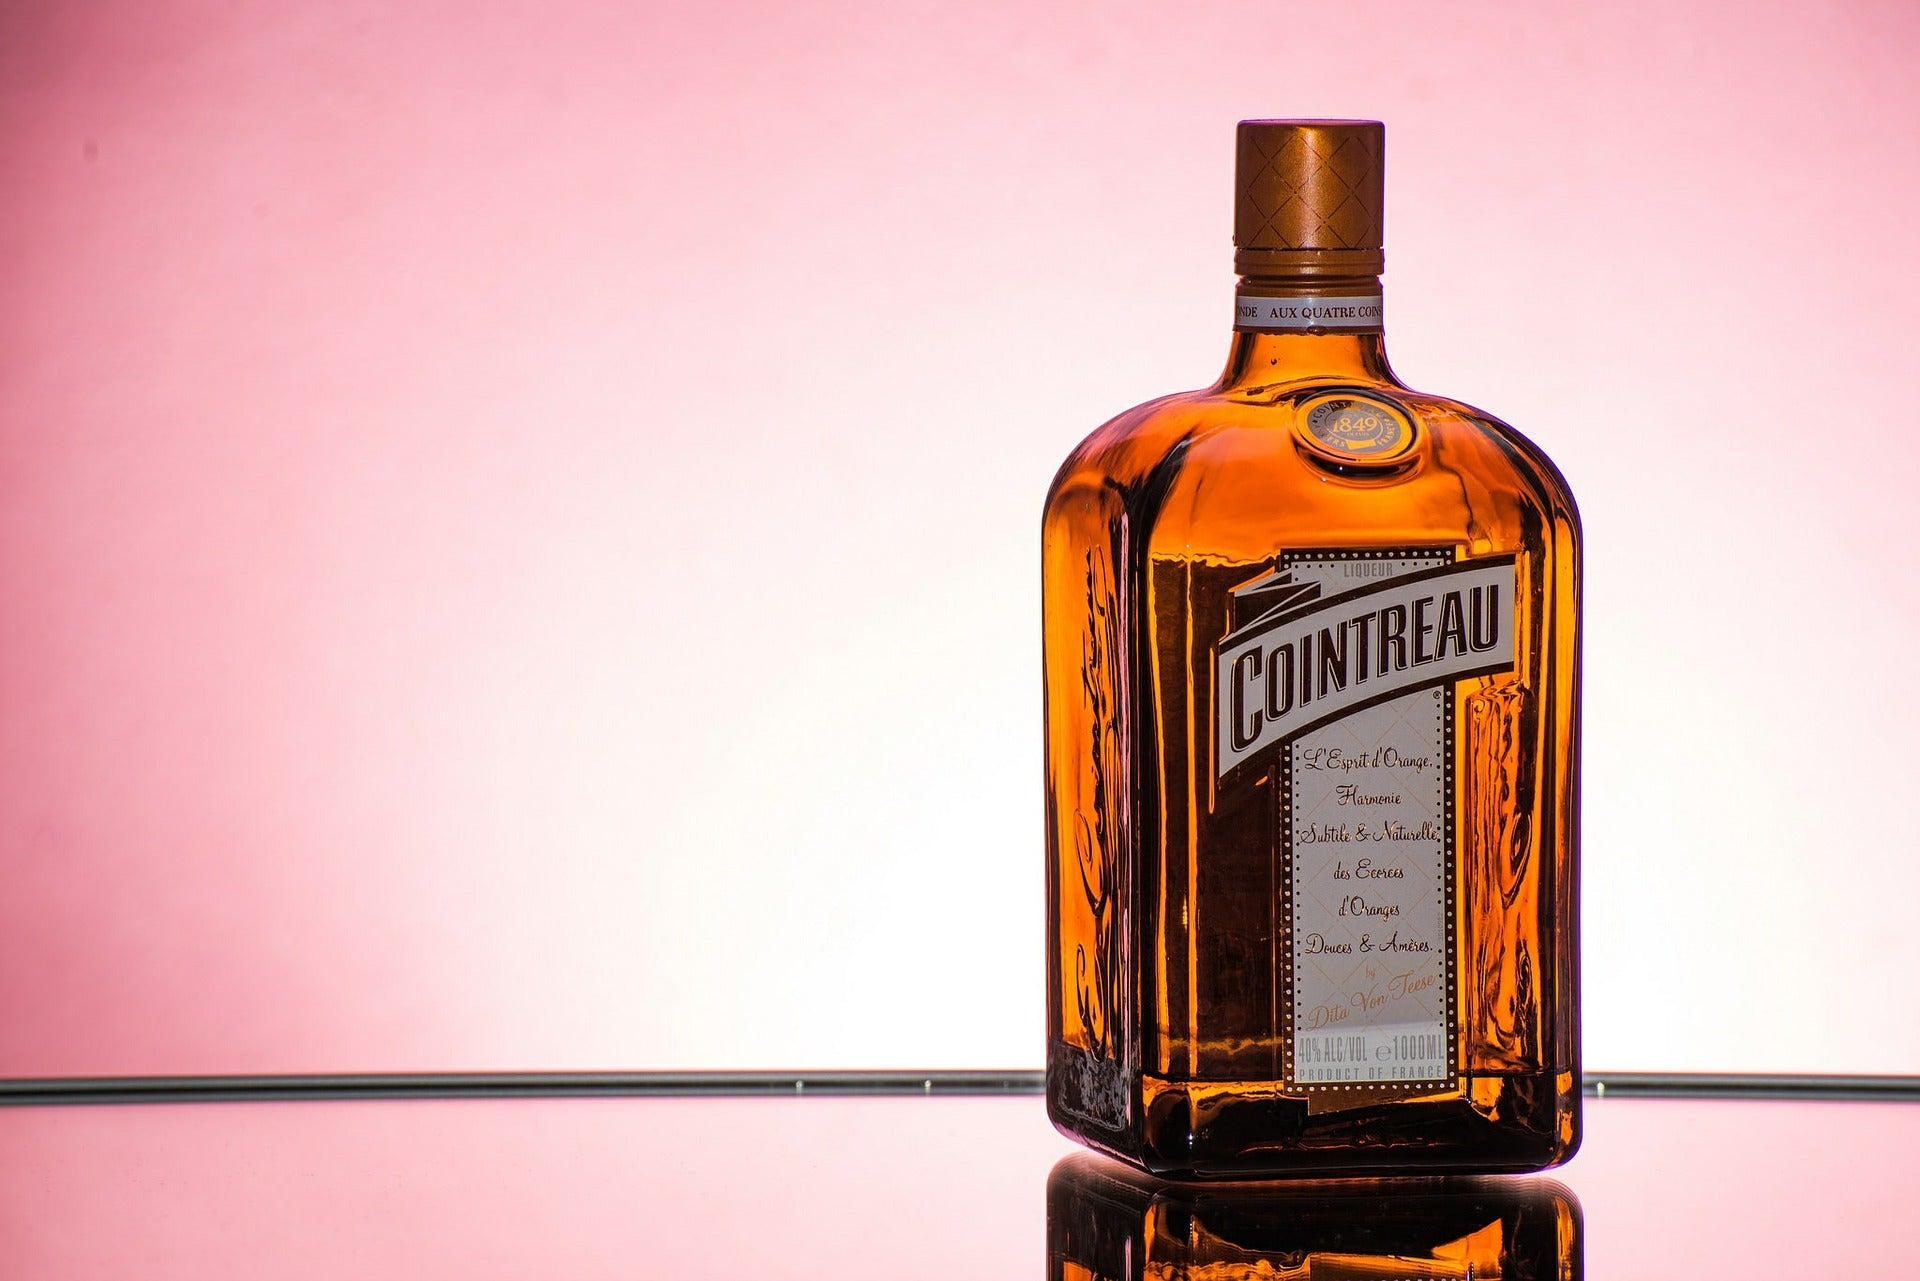 Cointreau is made from dried sweet orange peel